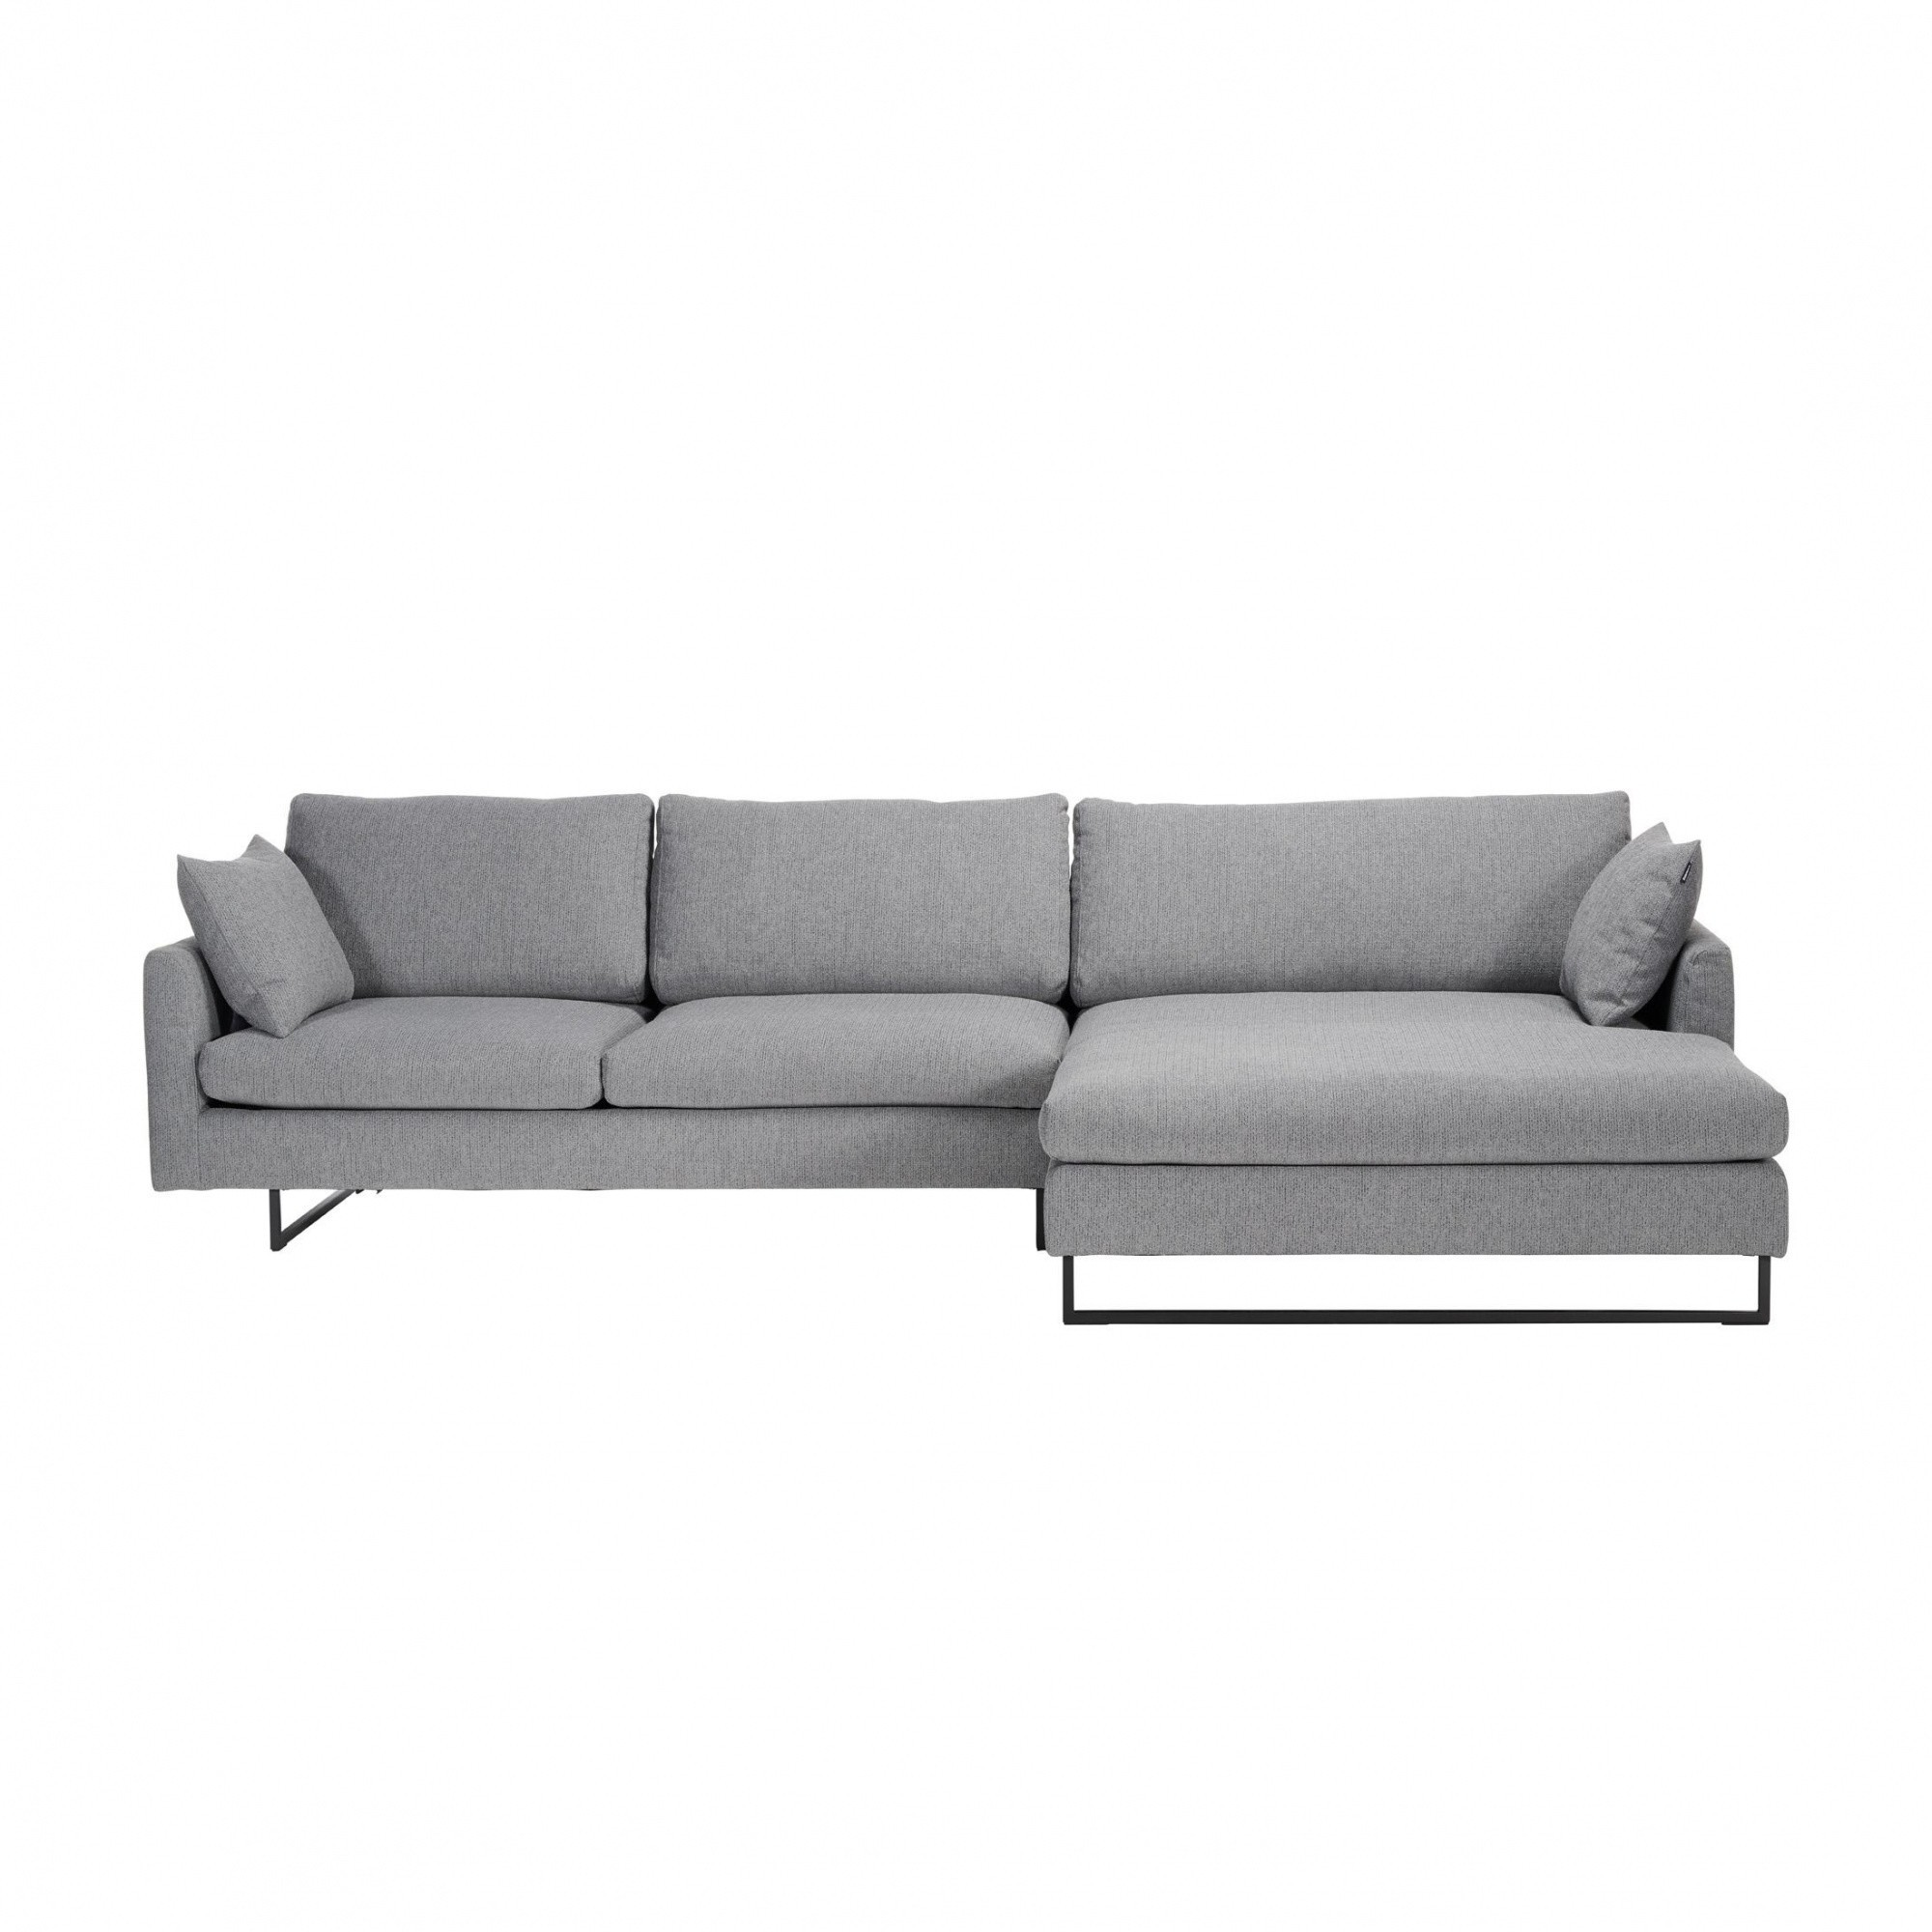 Rolf Benz Sofa Freistil Freistil 134 Lounge Sofa 314x177x88cm